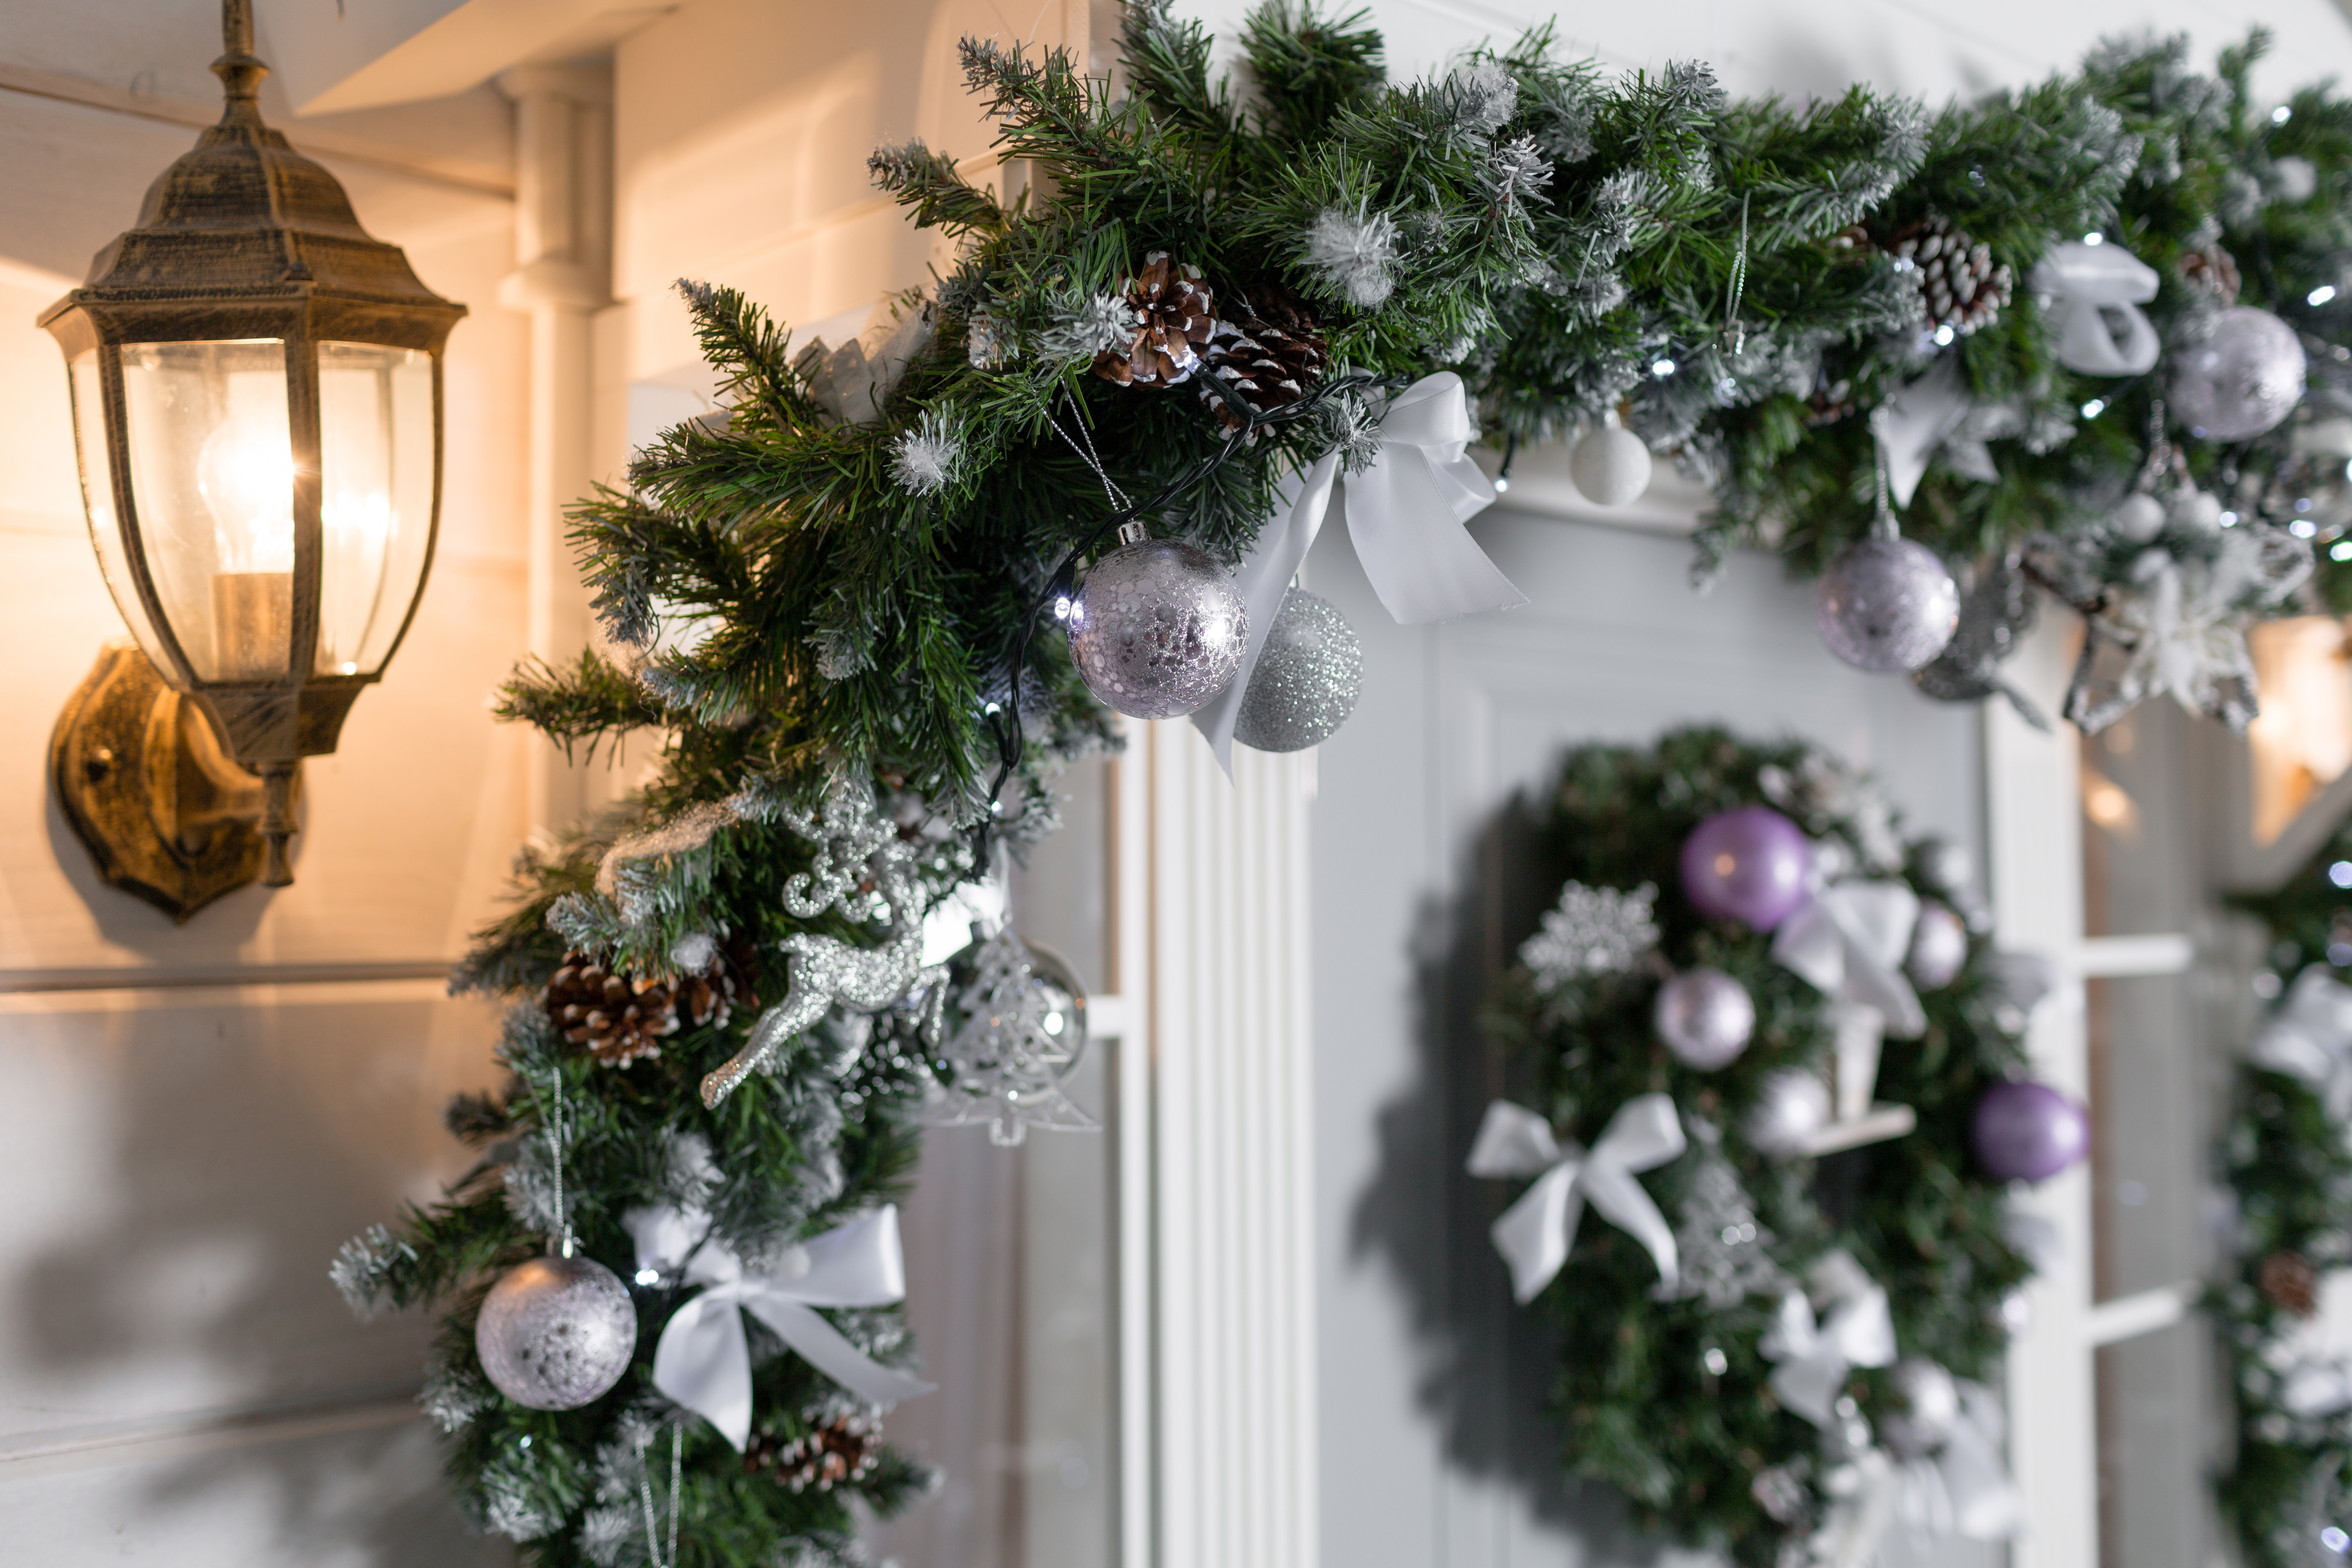 house entrance decorated for holidays. Christmas decoration. garland of fir tree branches and lights on the railing.